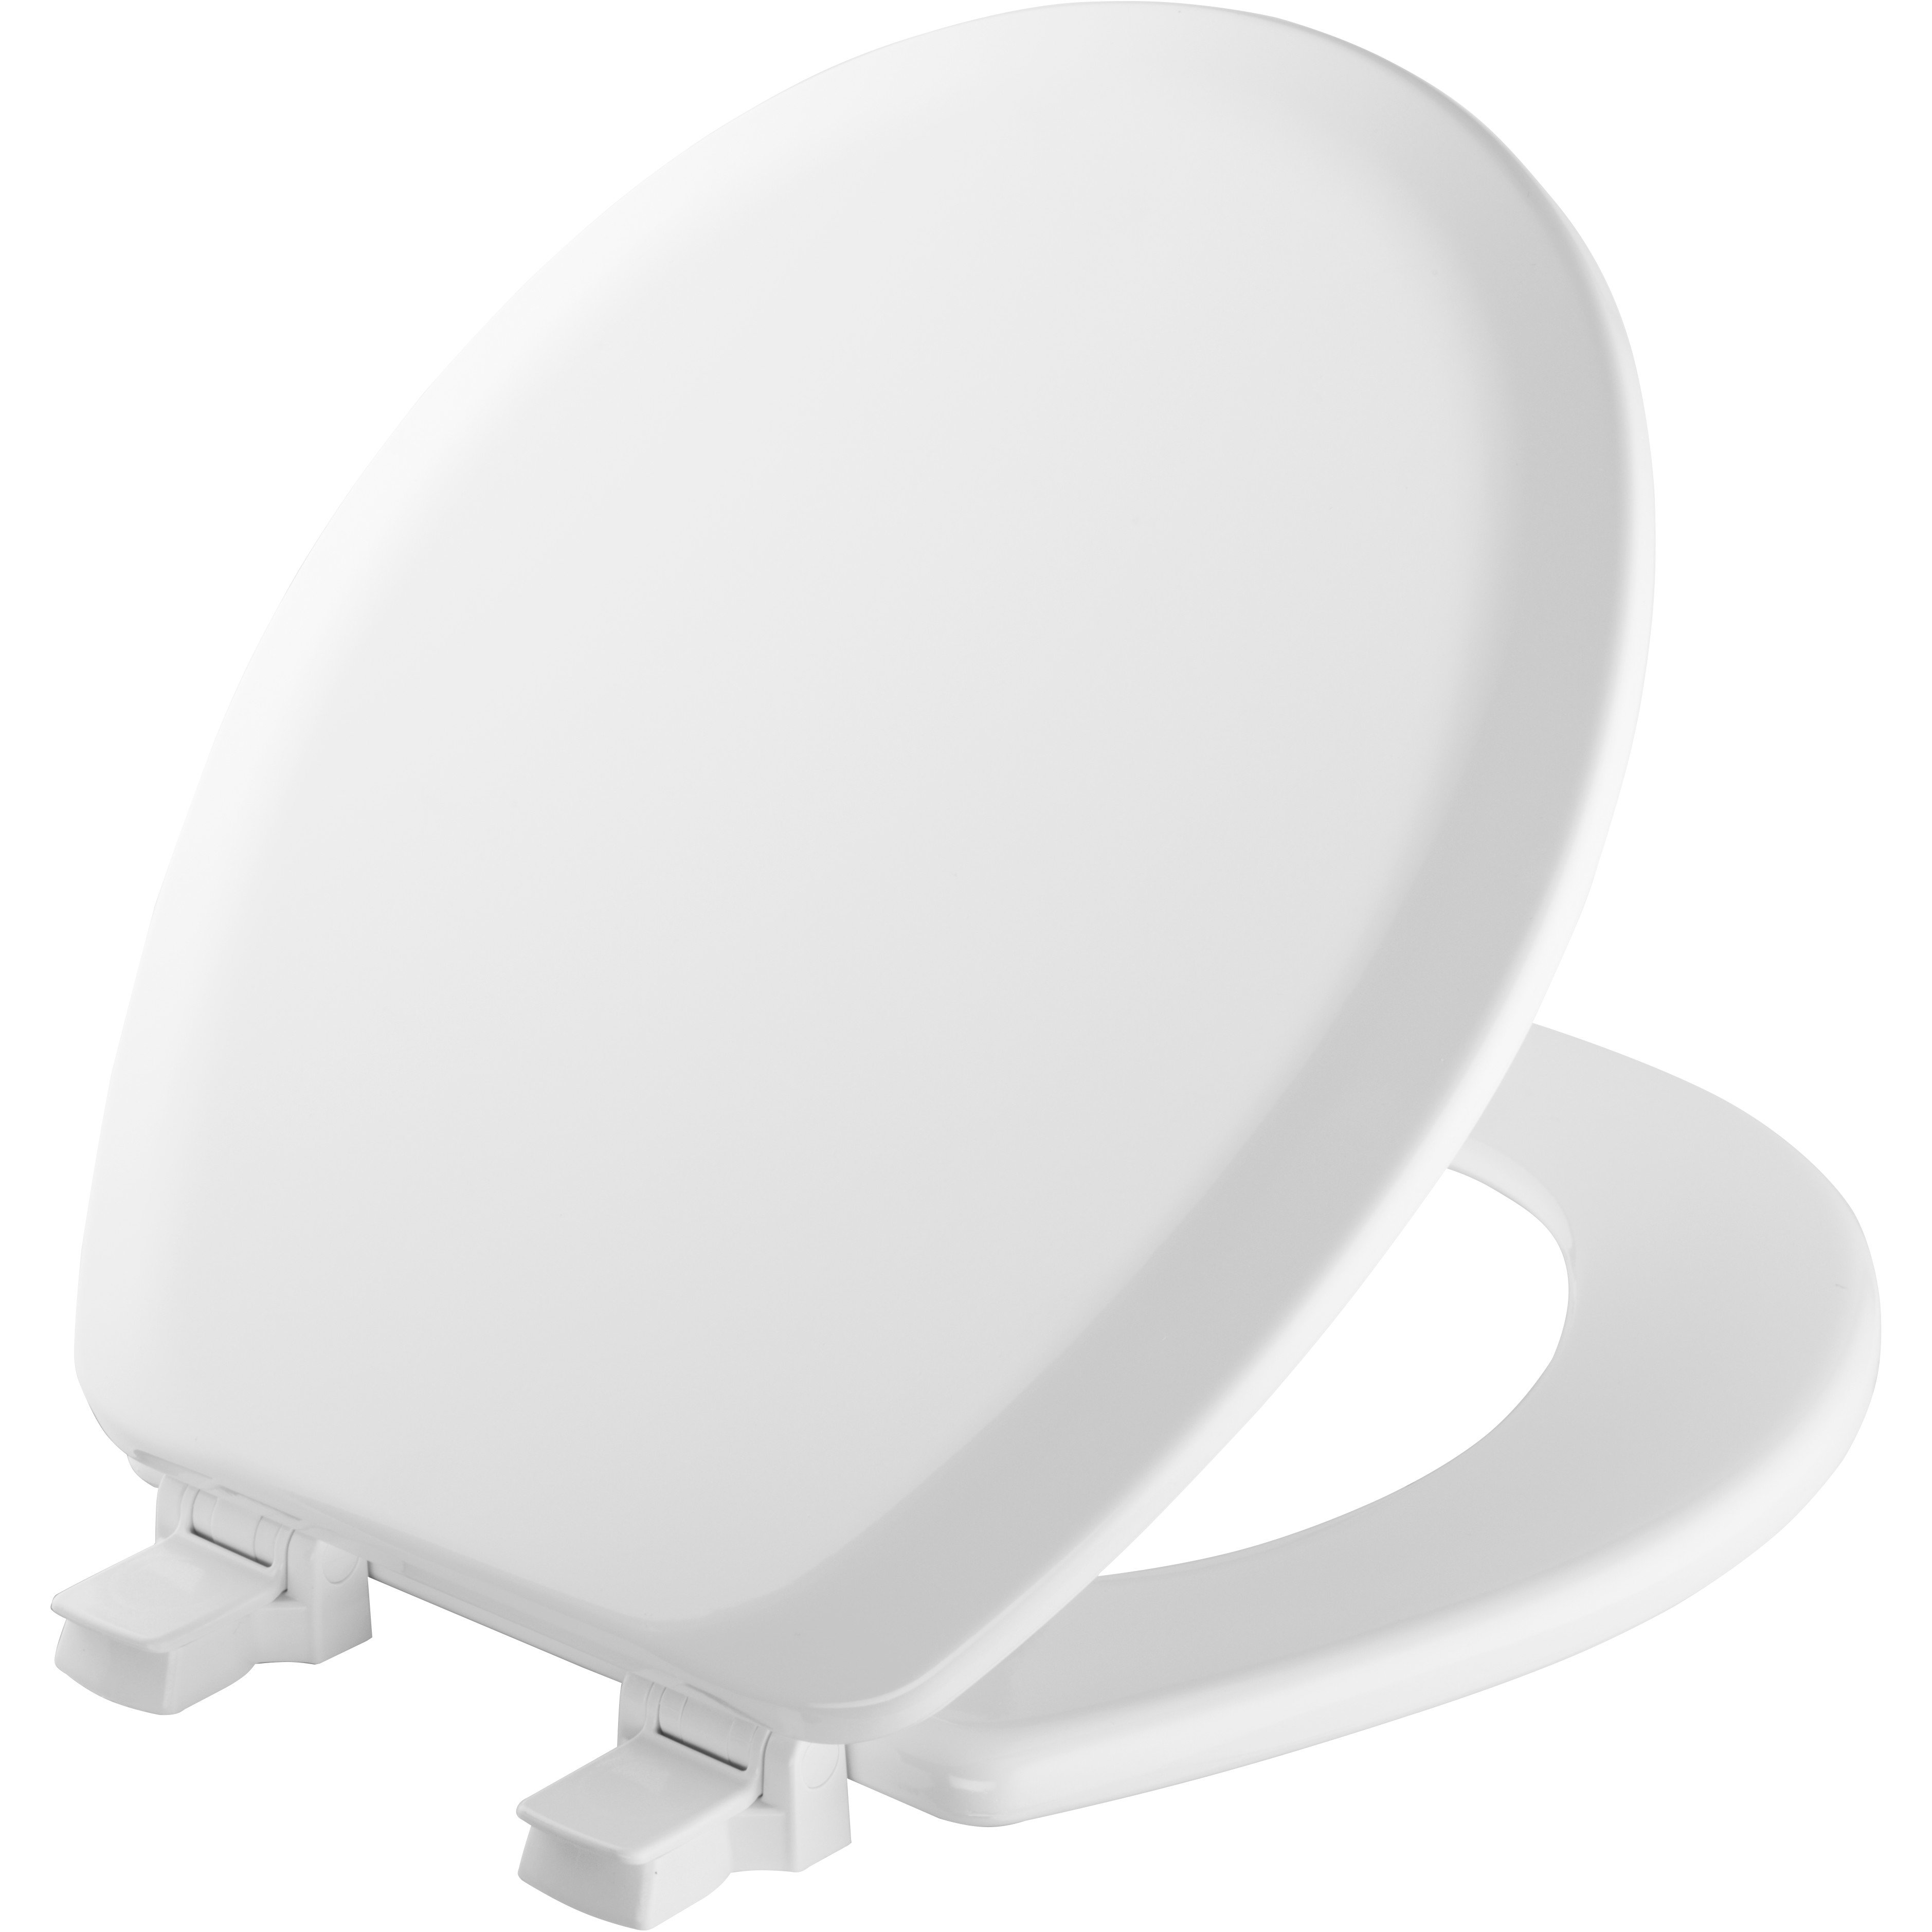 Wood Toilet Seat Walmart.Mayfair White Round Molded Wood Toilet Seat With Easy